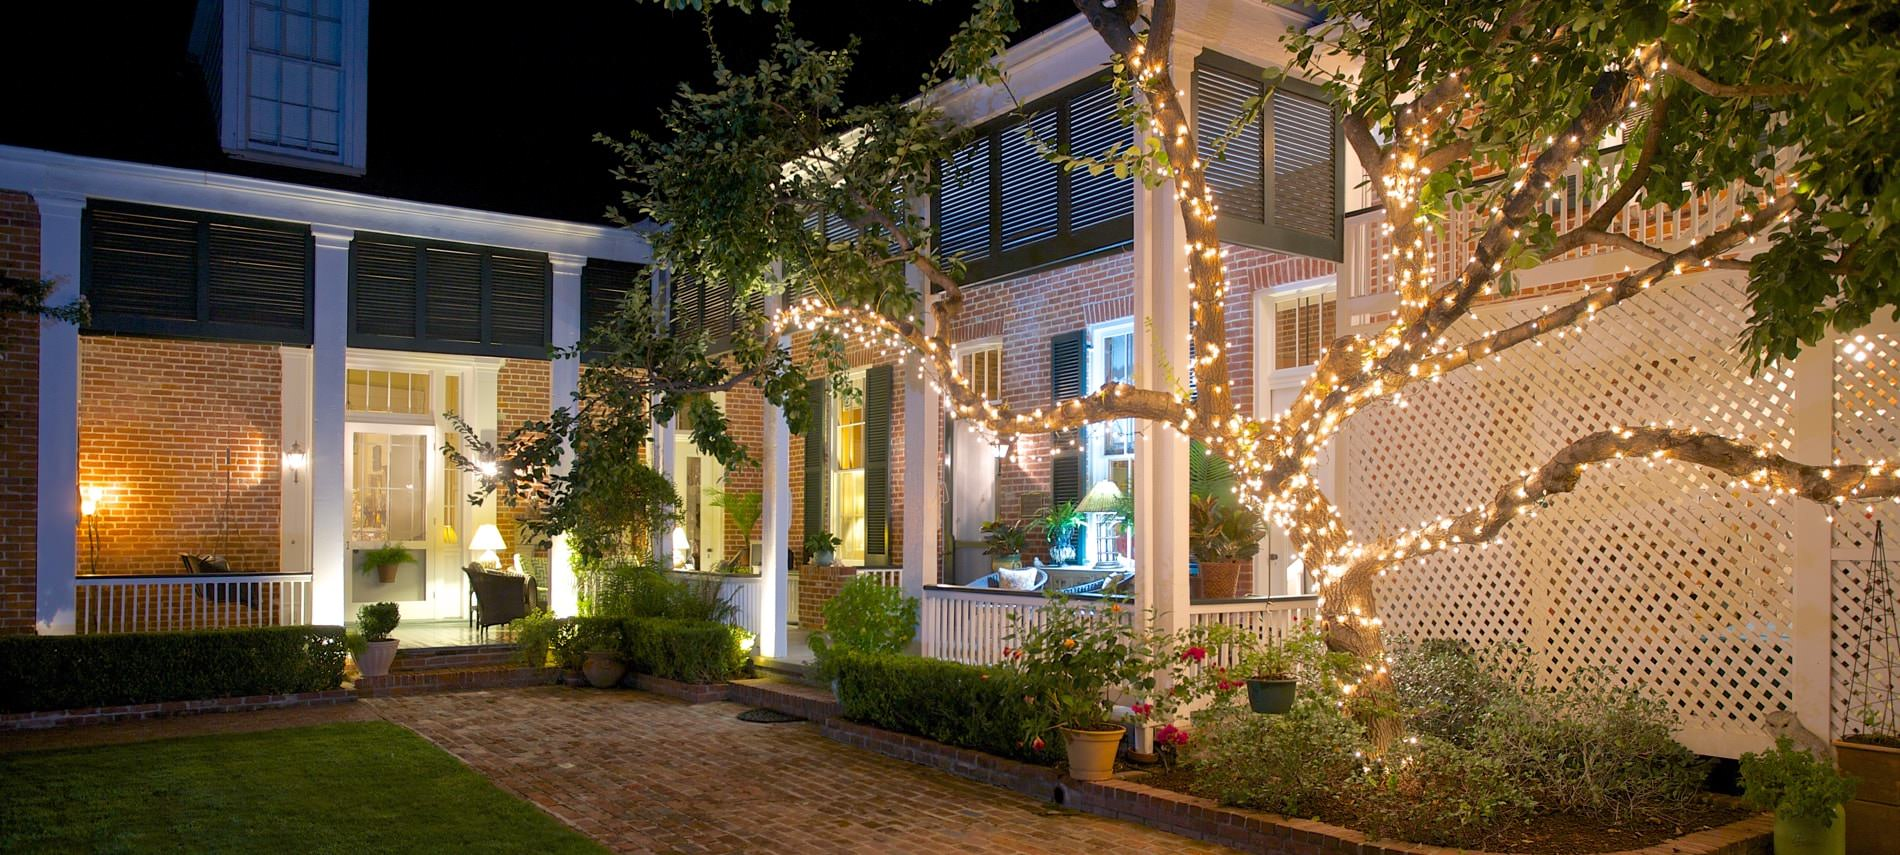 Nighttime view of brick walkway leading to well-lit porch and a tree wrapped in pretty string lights